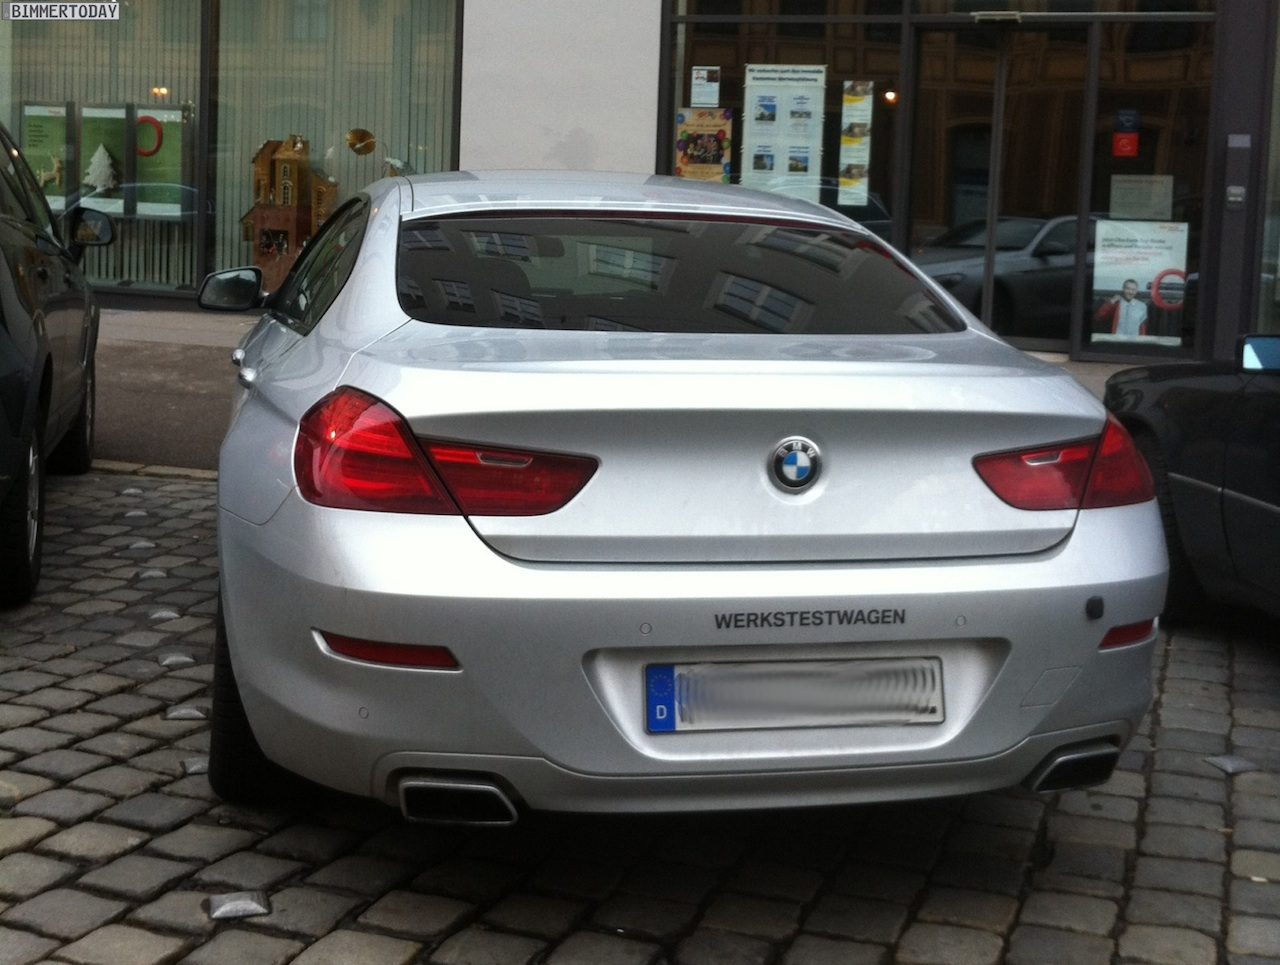 BMW_6_Series_Gran_Coupe_irl_01.jpg